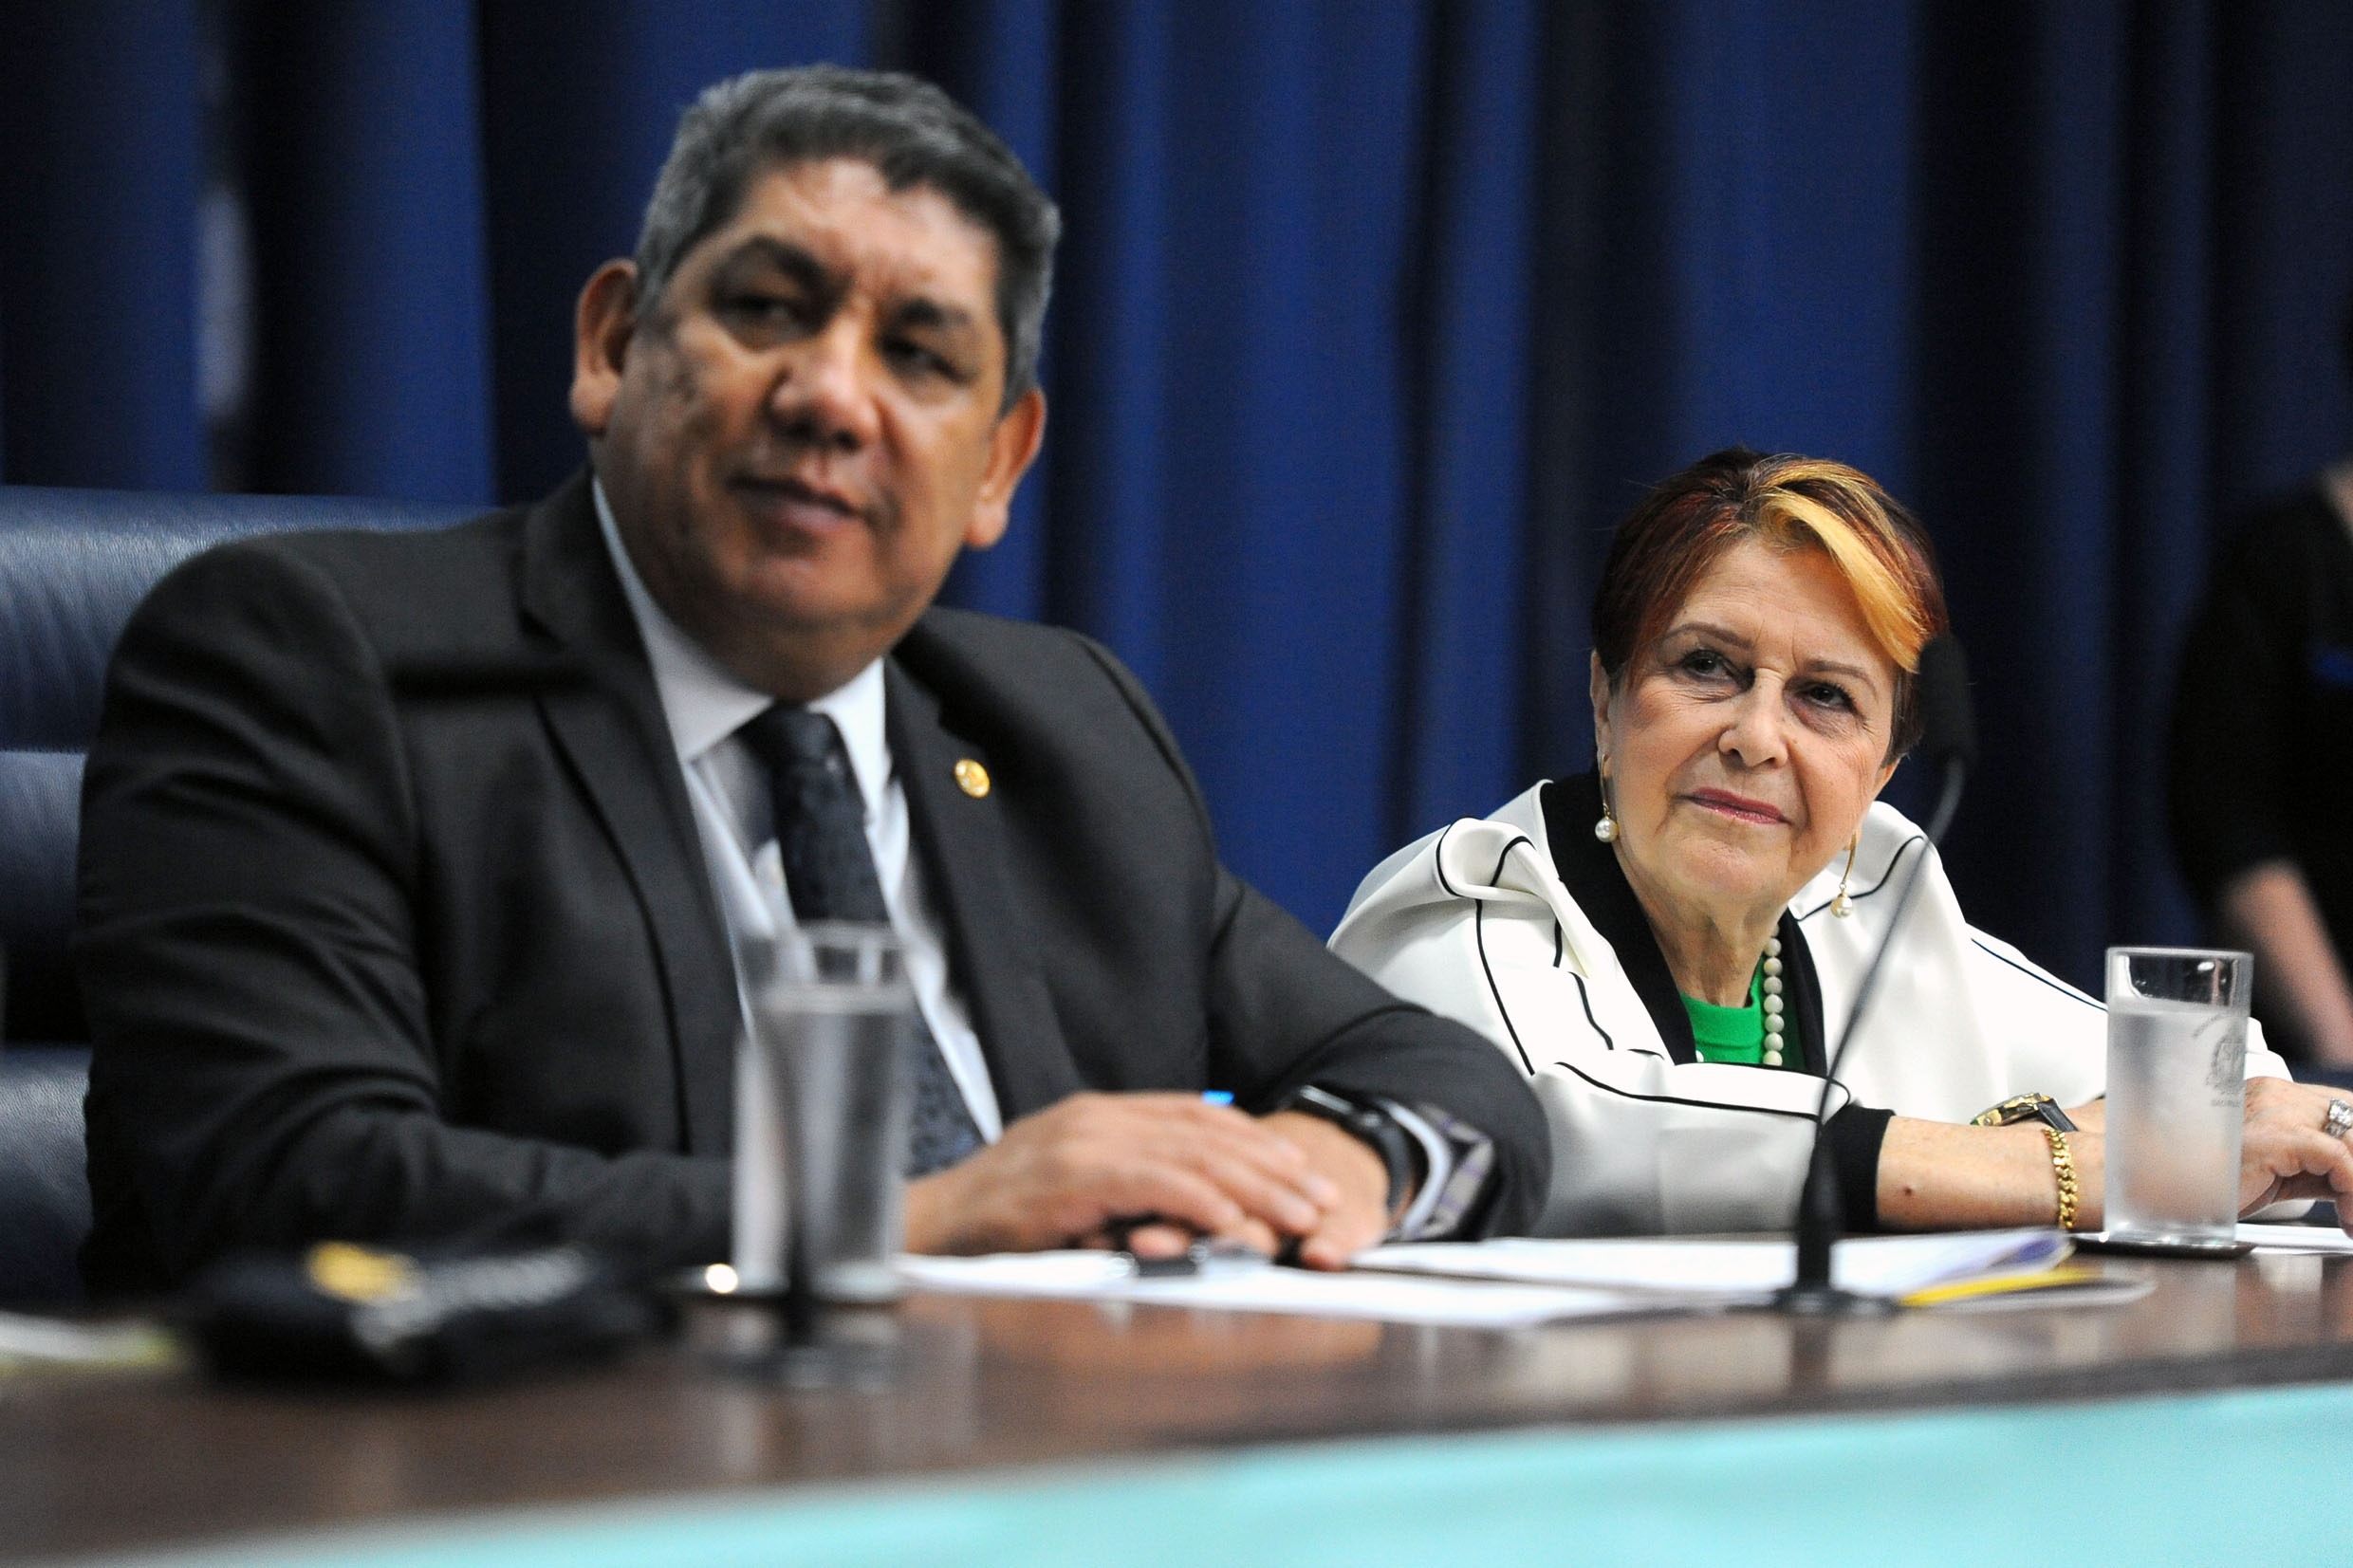 Adalberto Freitas e Edna Macedo<a style='float:right' href='https://www3.al.sp.gov.br/repositorio/noticia/N-11-2019/fg244819.jpg' target=_blank><img src='/_img/material-file-download-white.png' width='14px' alt='Clique para baixar a imagem'></a>